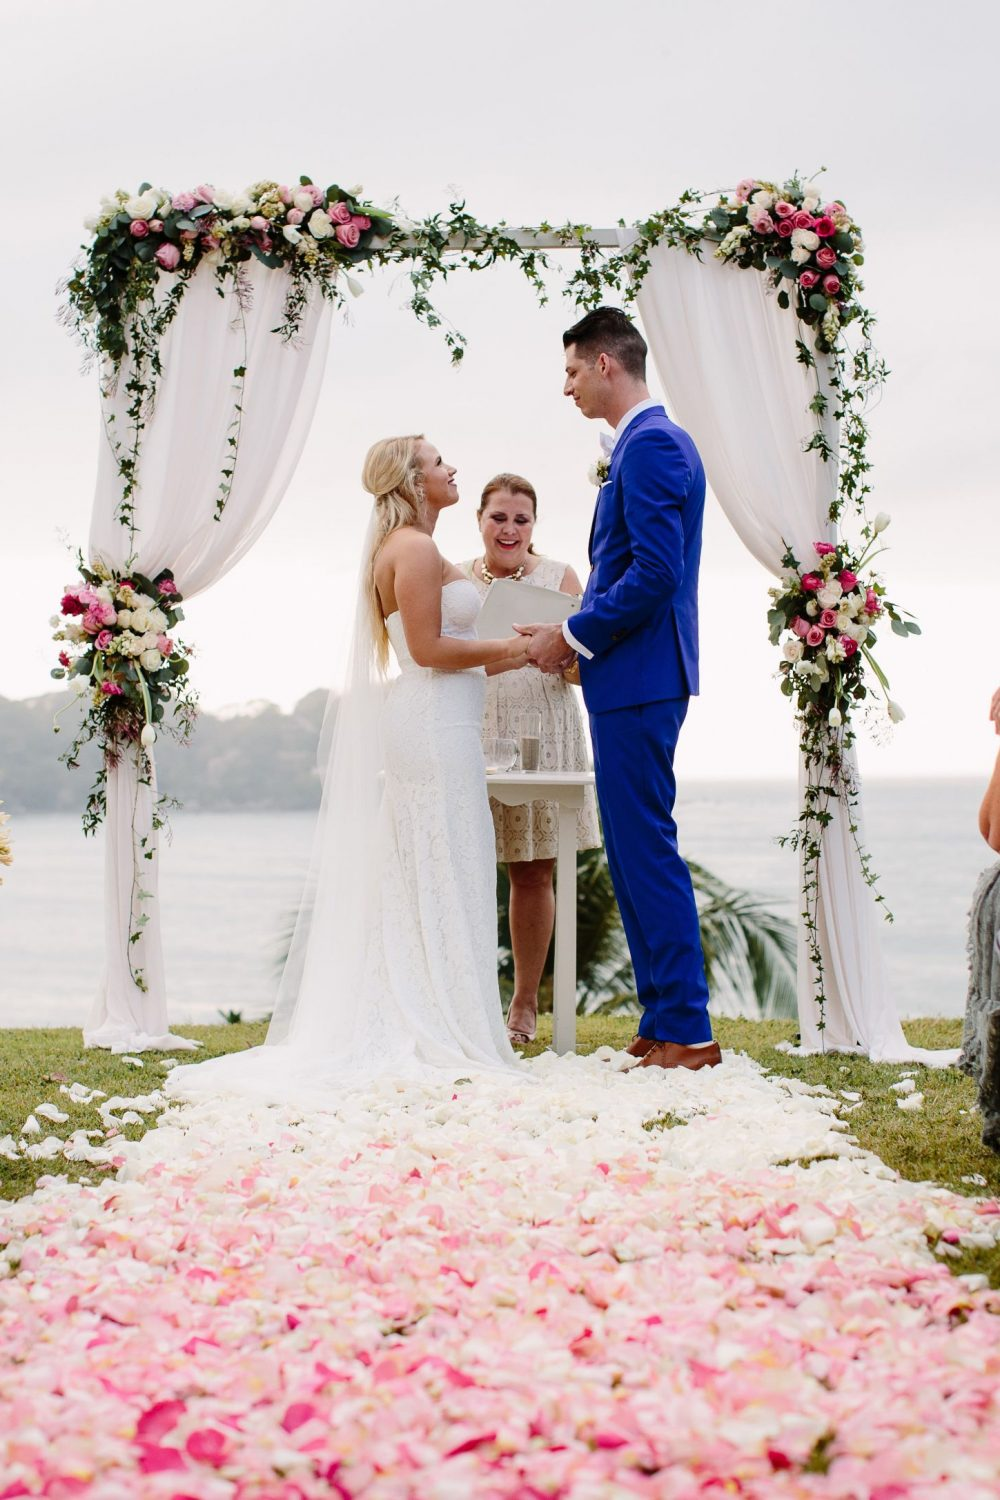 the bride and groom during their wedding ceremony with an arch wtih white curtains, greenery and pink and white flowers at this Sayulita Mexico destination wedding